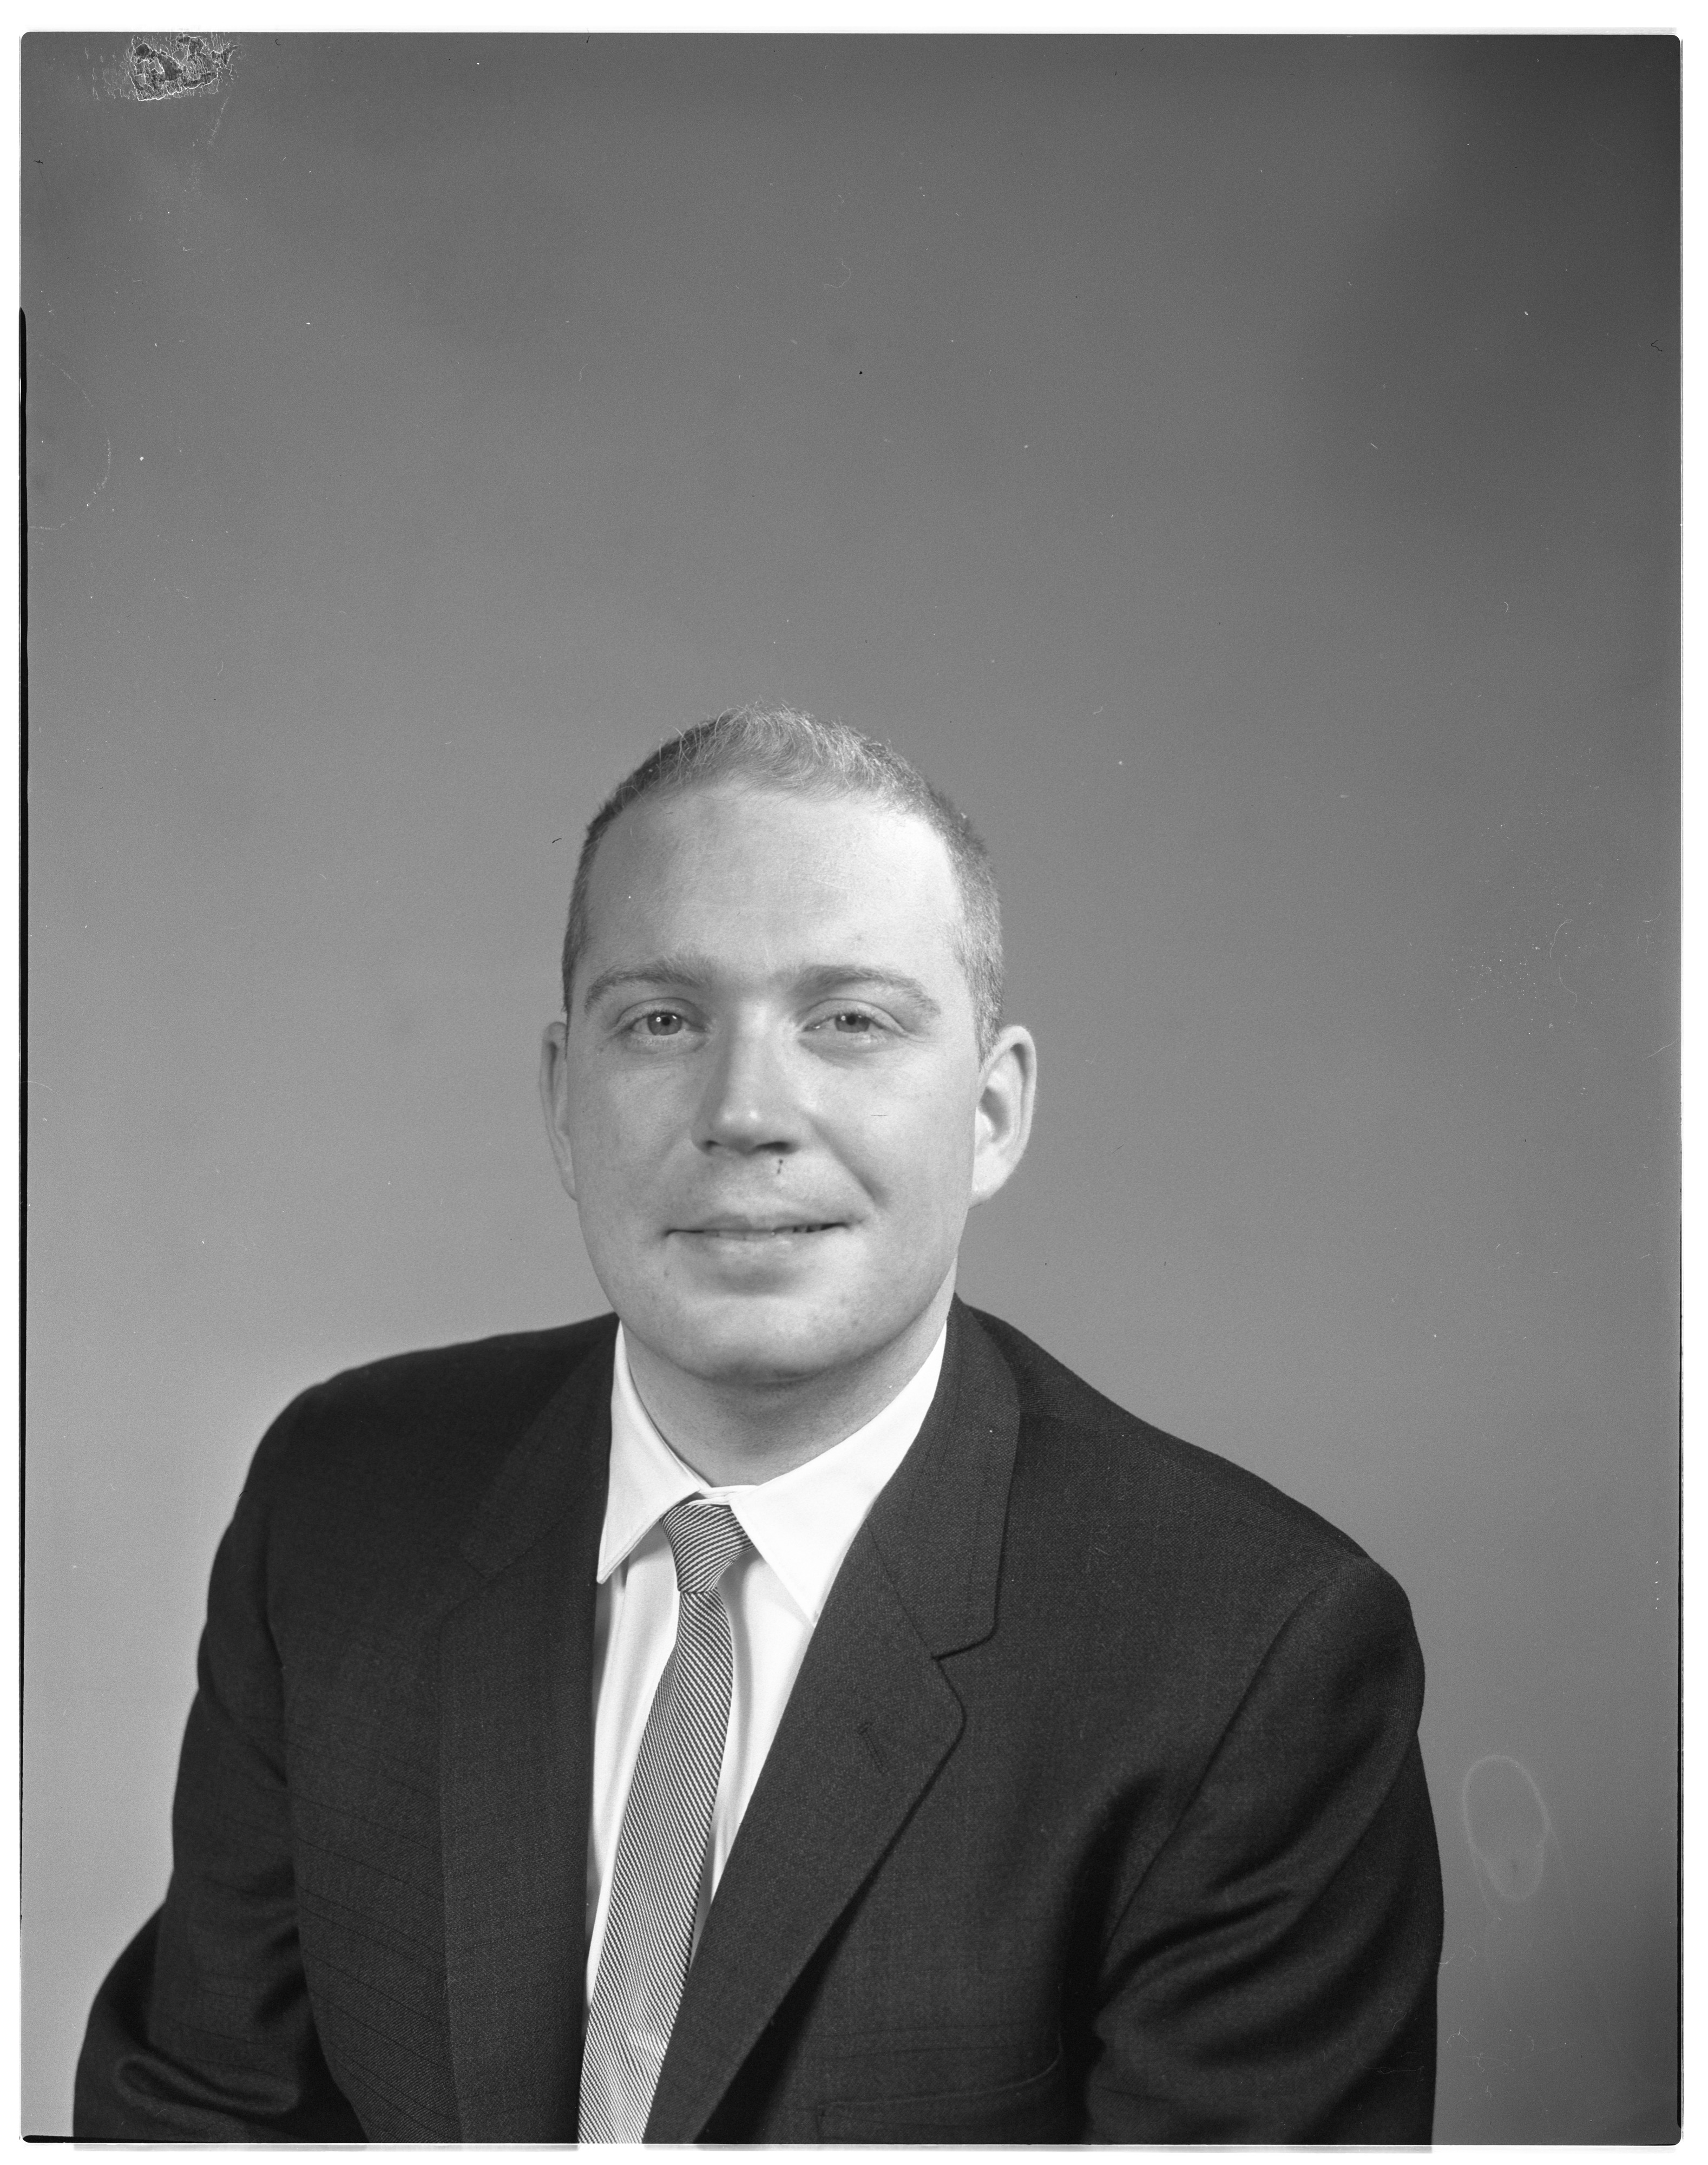 Dean Z. Douthat Named Chief Engineer of Preliminary Design at Sensor Dynamics, February 1963 image